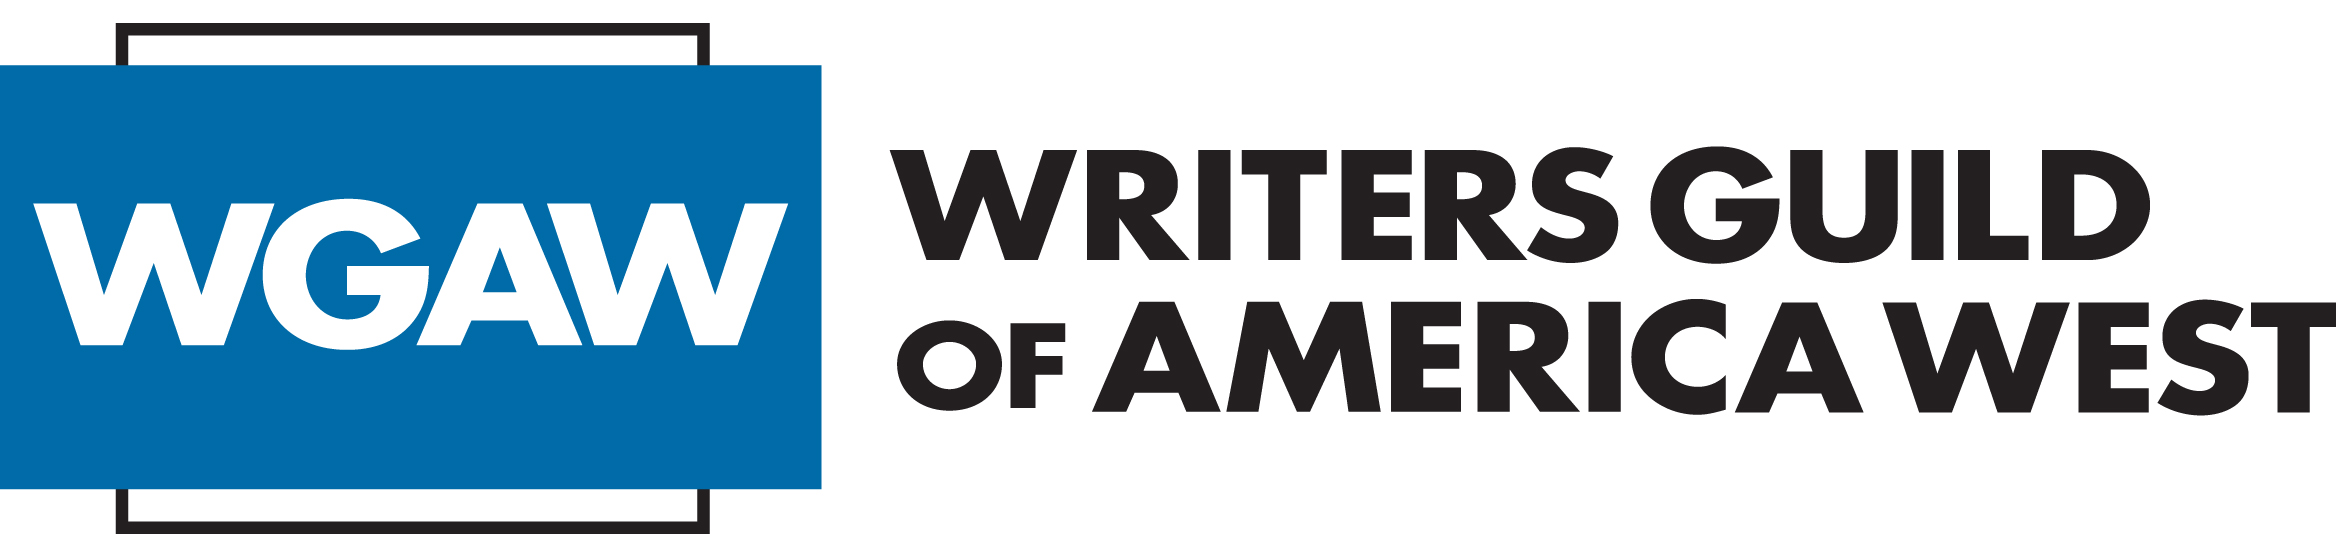 writers guild logo